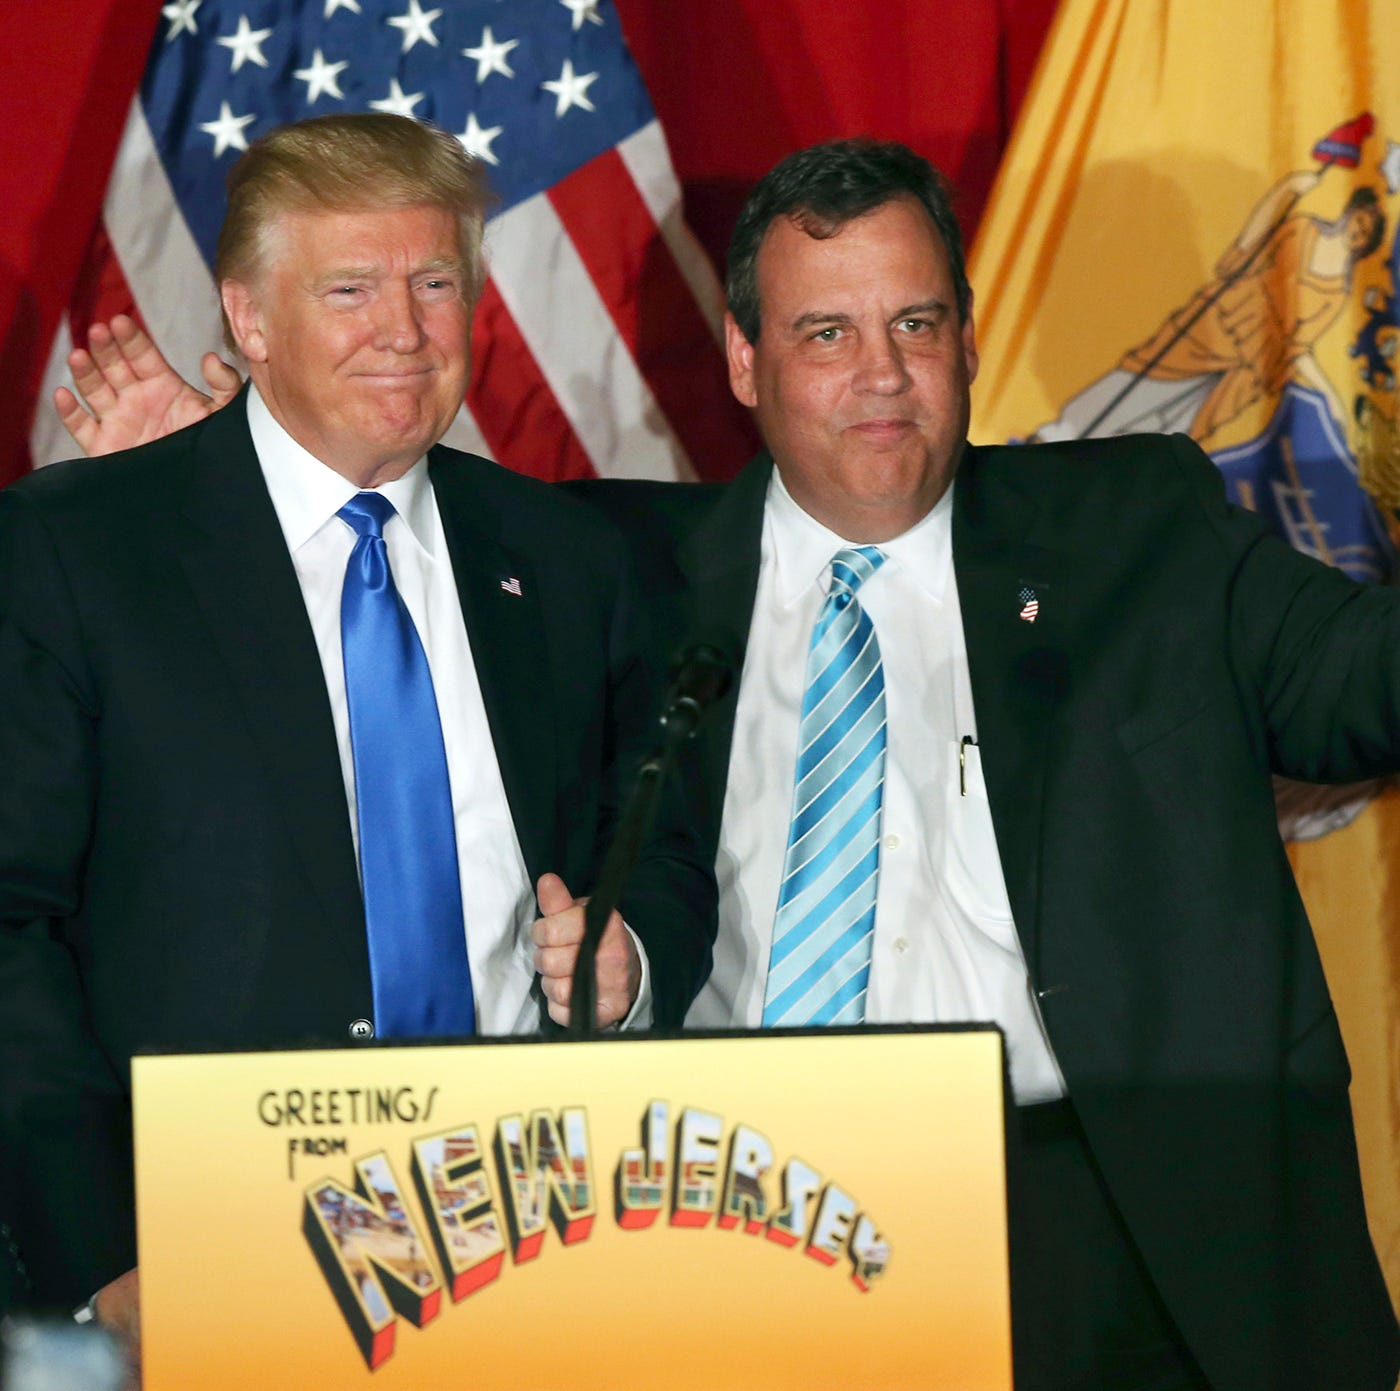 Could Chris Christie be next White House chief of staff?